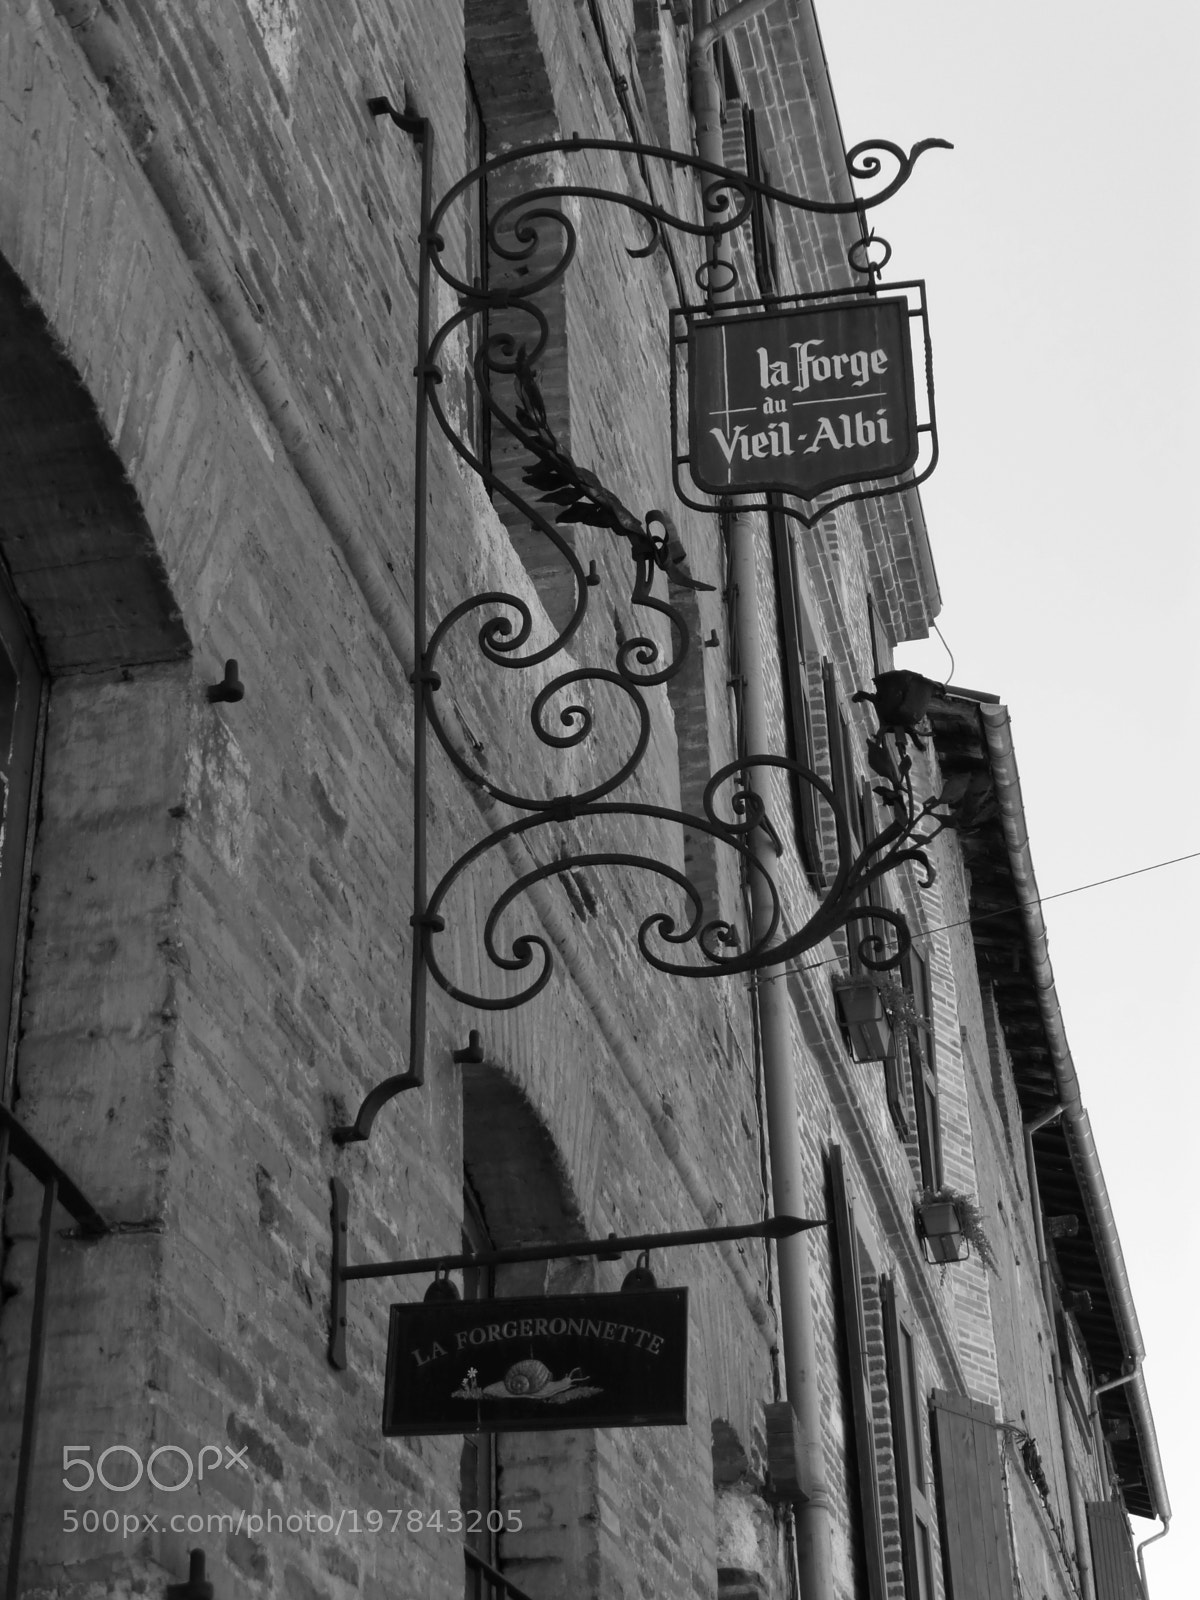 Albi shop sign, Panasonic DMC-TZ36